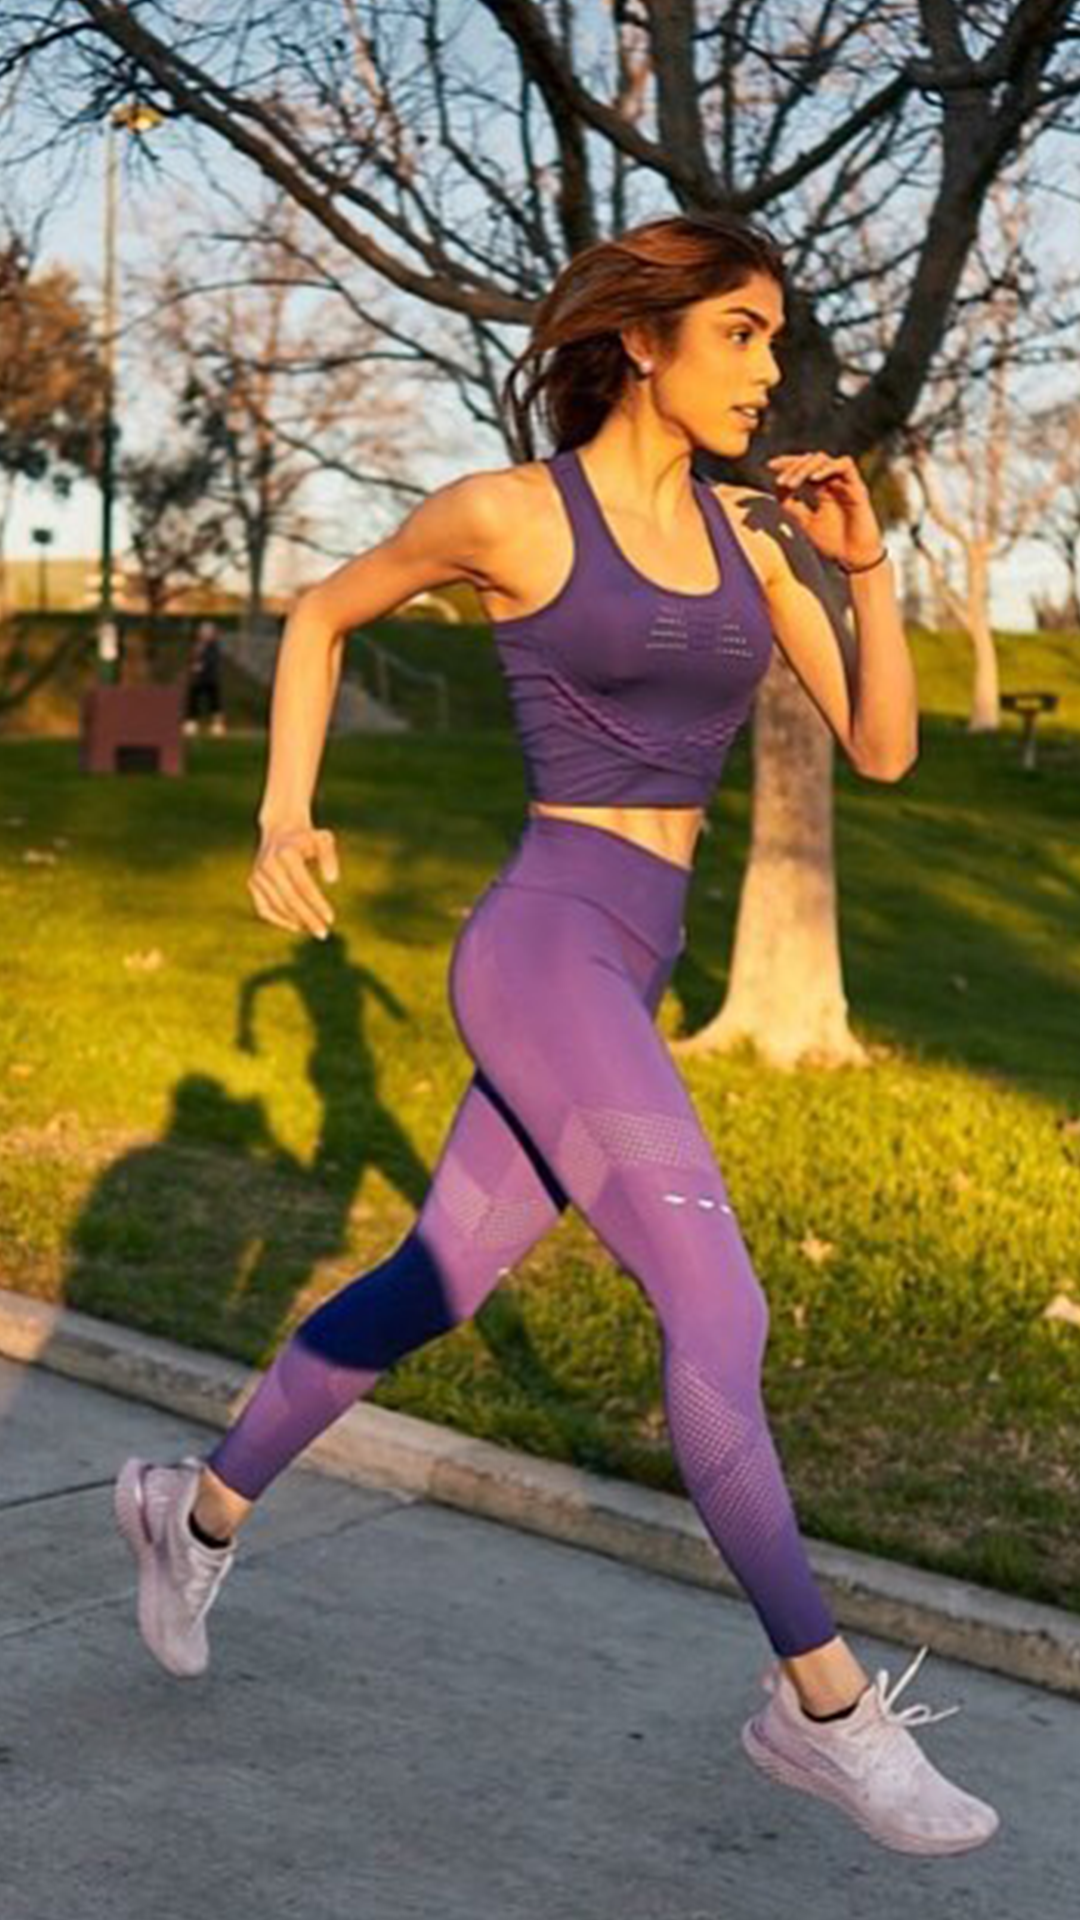 39c520380c0d6 Don't let the day run you, you run the day! Paula Galindo (@paufittips)  styles the Pro Perform Crop Top and Leggings in Indigo for her daily run. # Gymshark ...